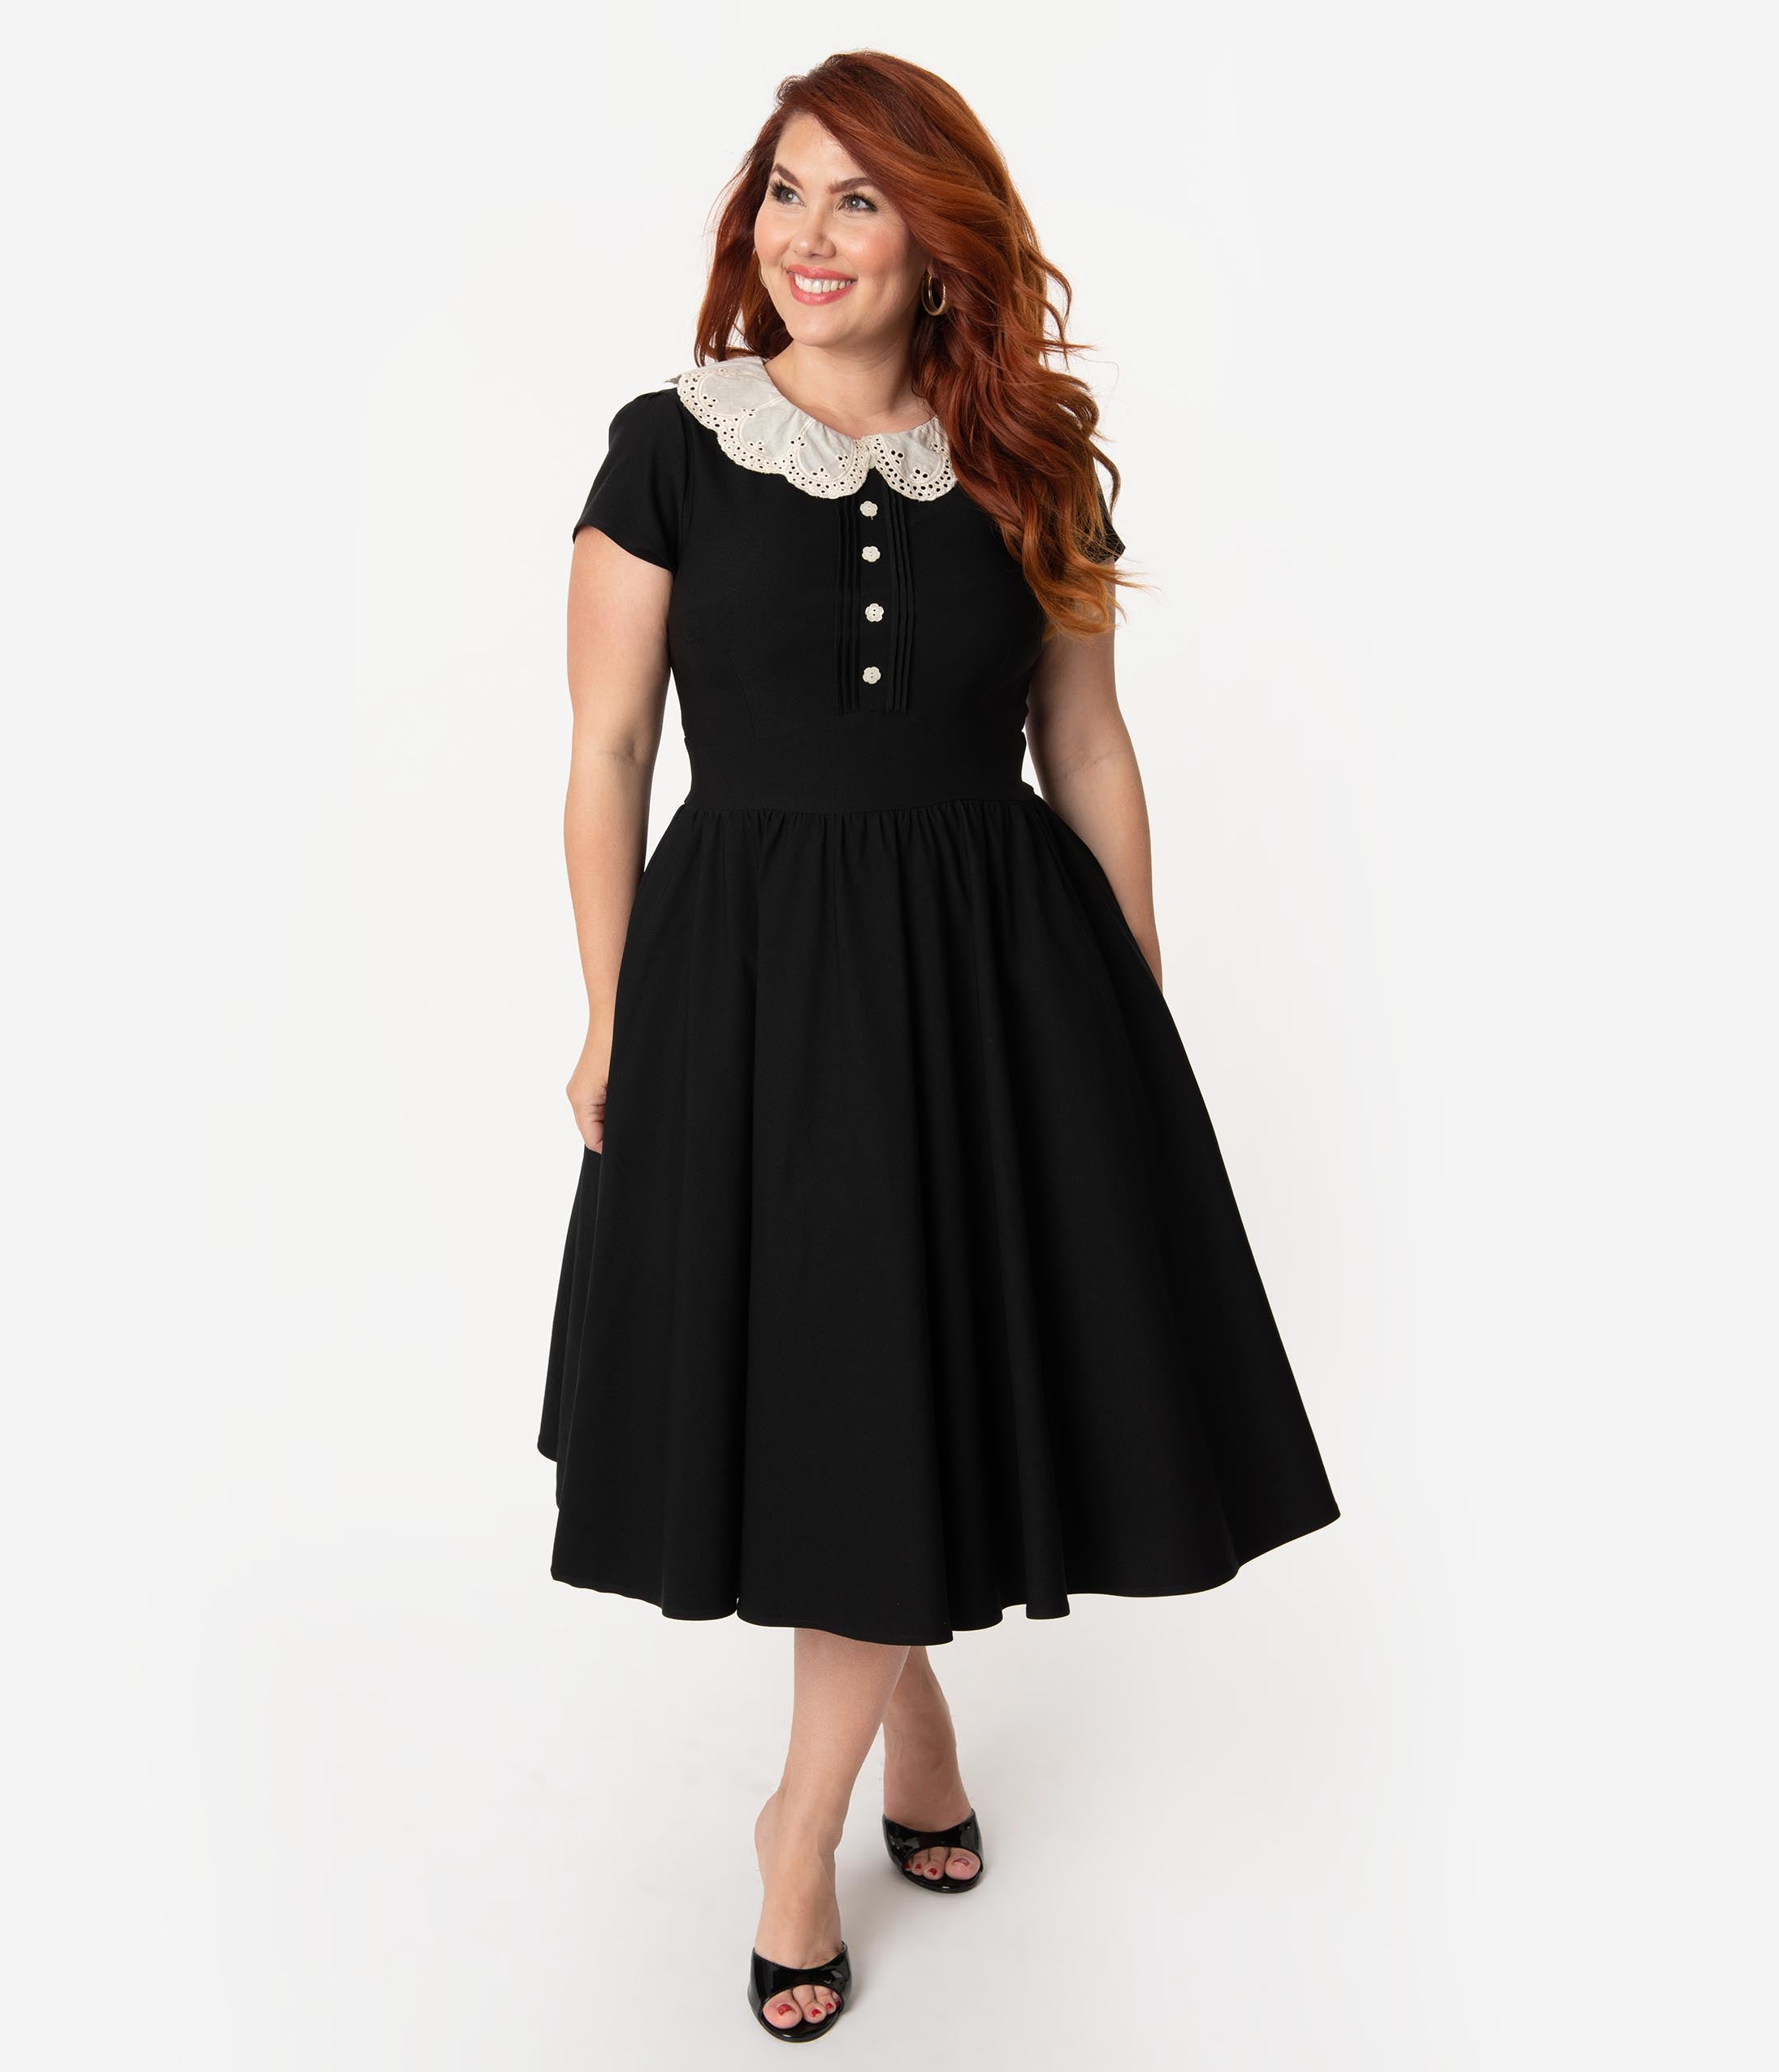 Plus Size Pin Up Dresses | Plus Size Rockabilly Dresses Stop Staring Plus Size Black With Lace Collar Gladil Swing Dress $141.00 AT vintagedancer.com